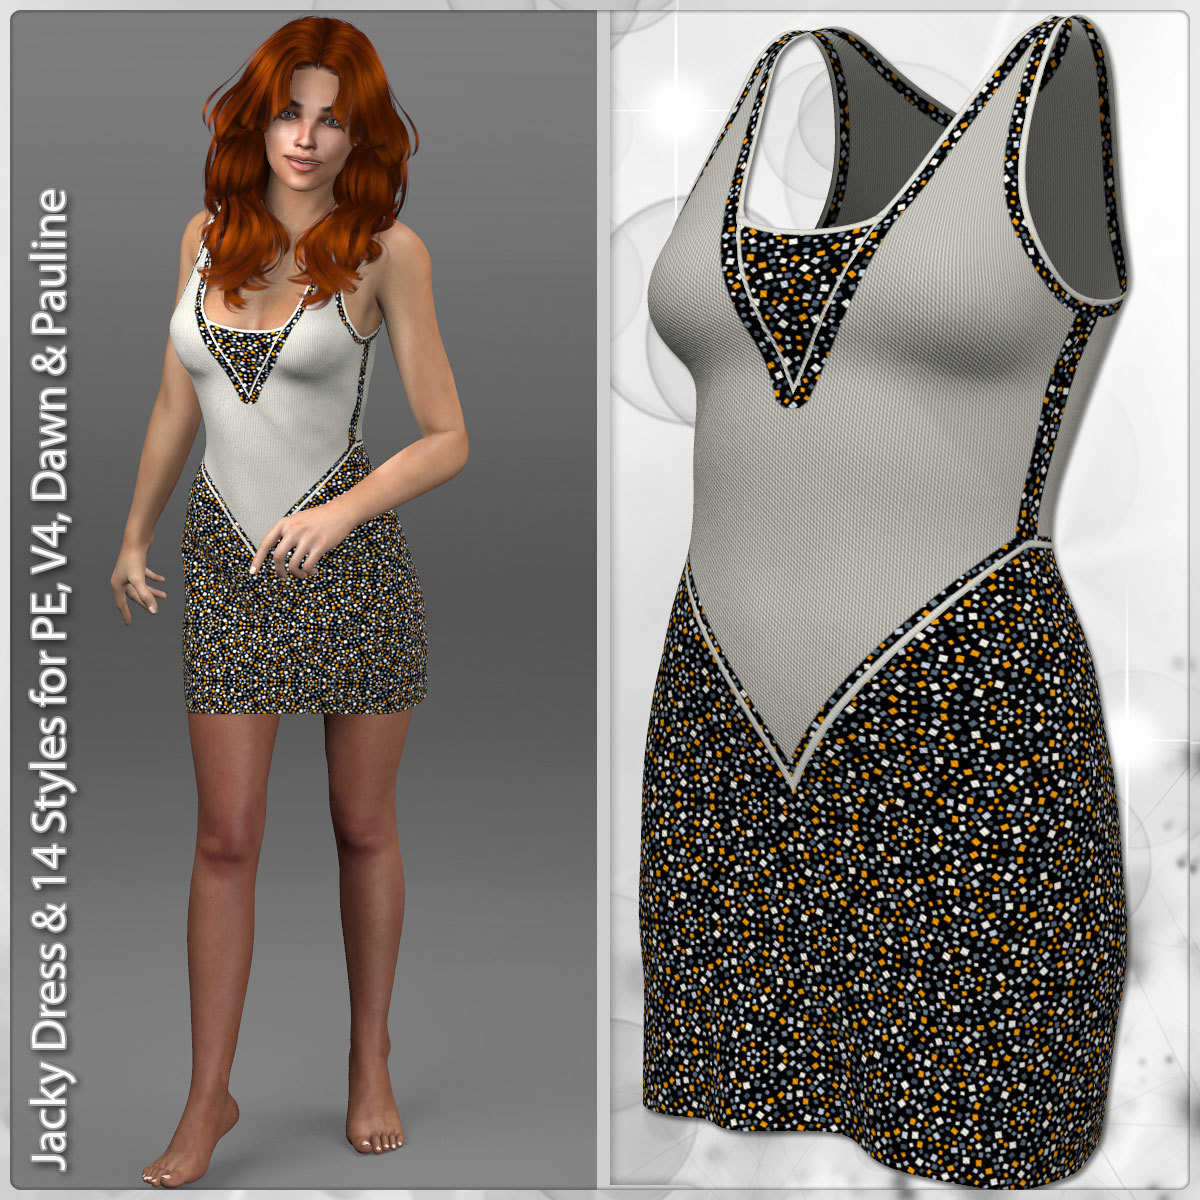 Jacky Dress and 14 Styles for PE, V4, Dawn and Pauline by karanta